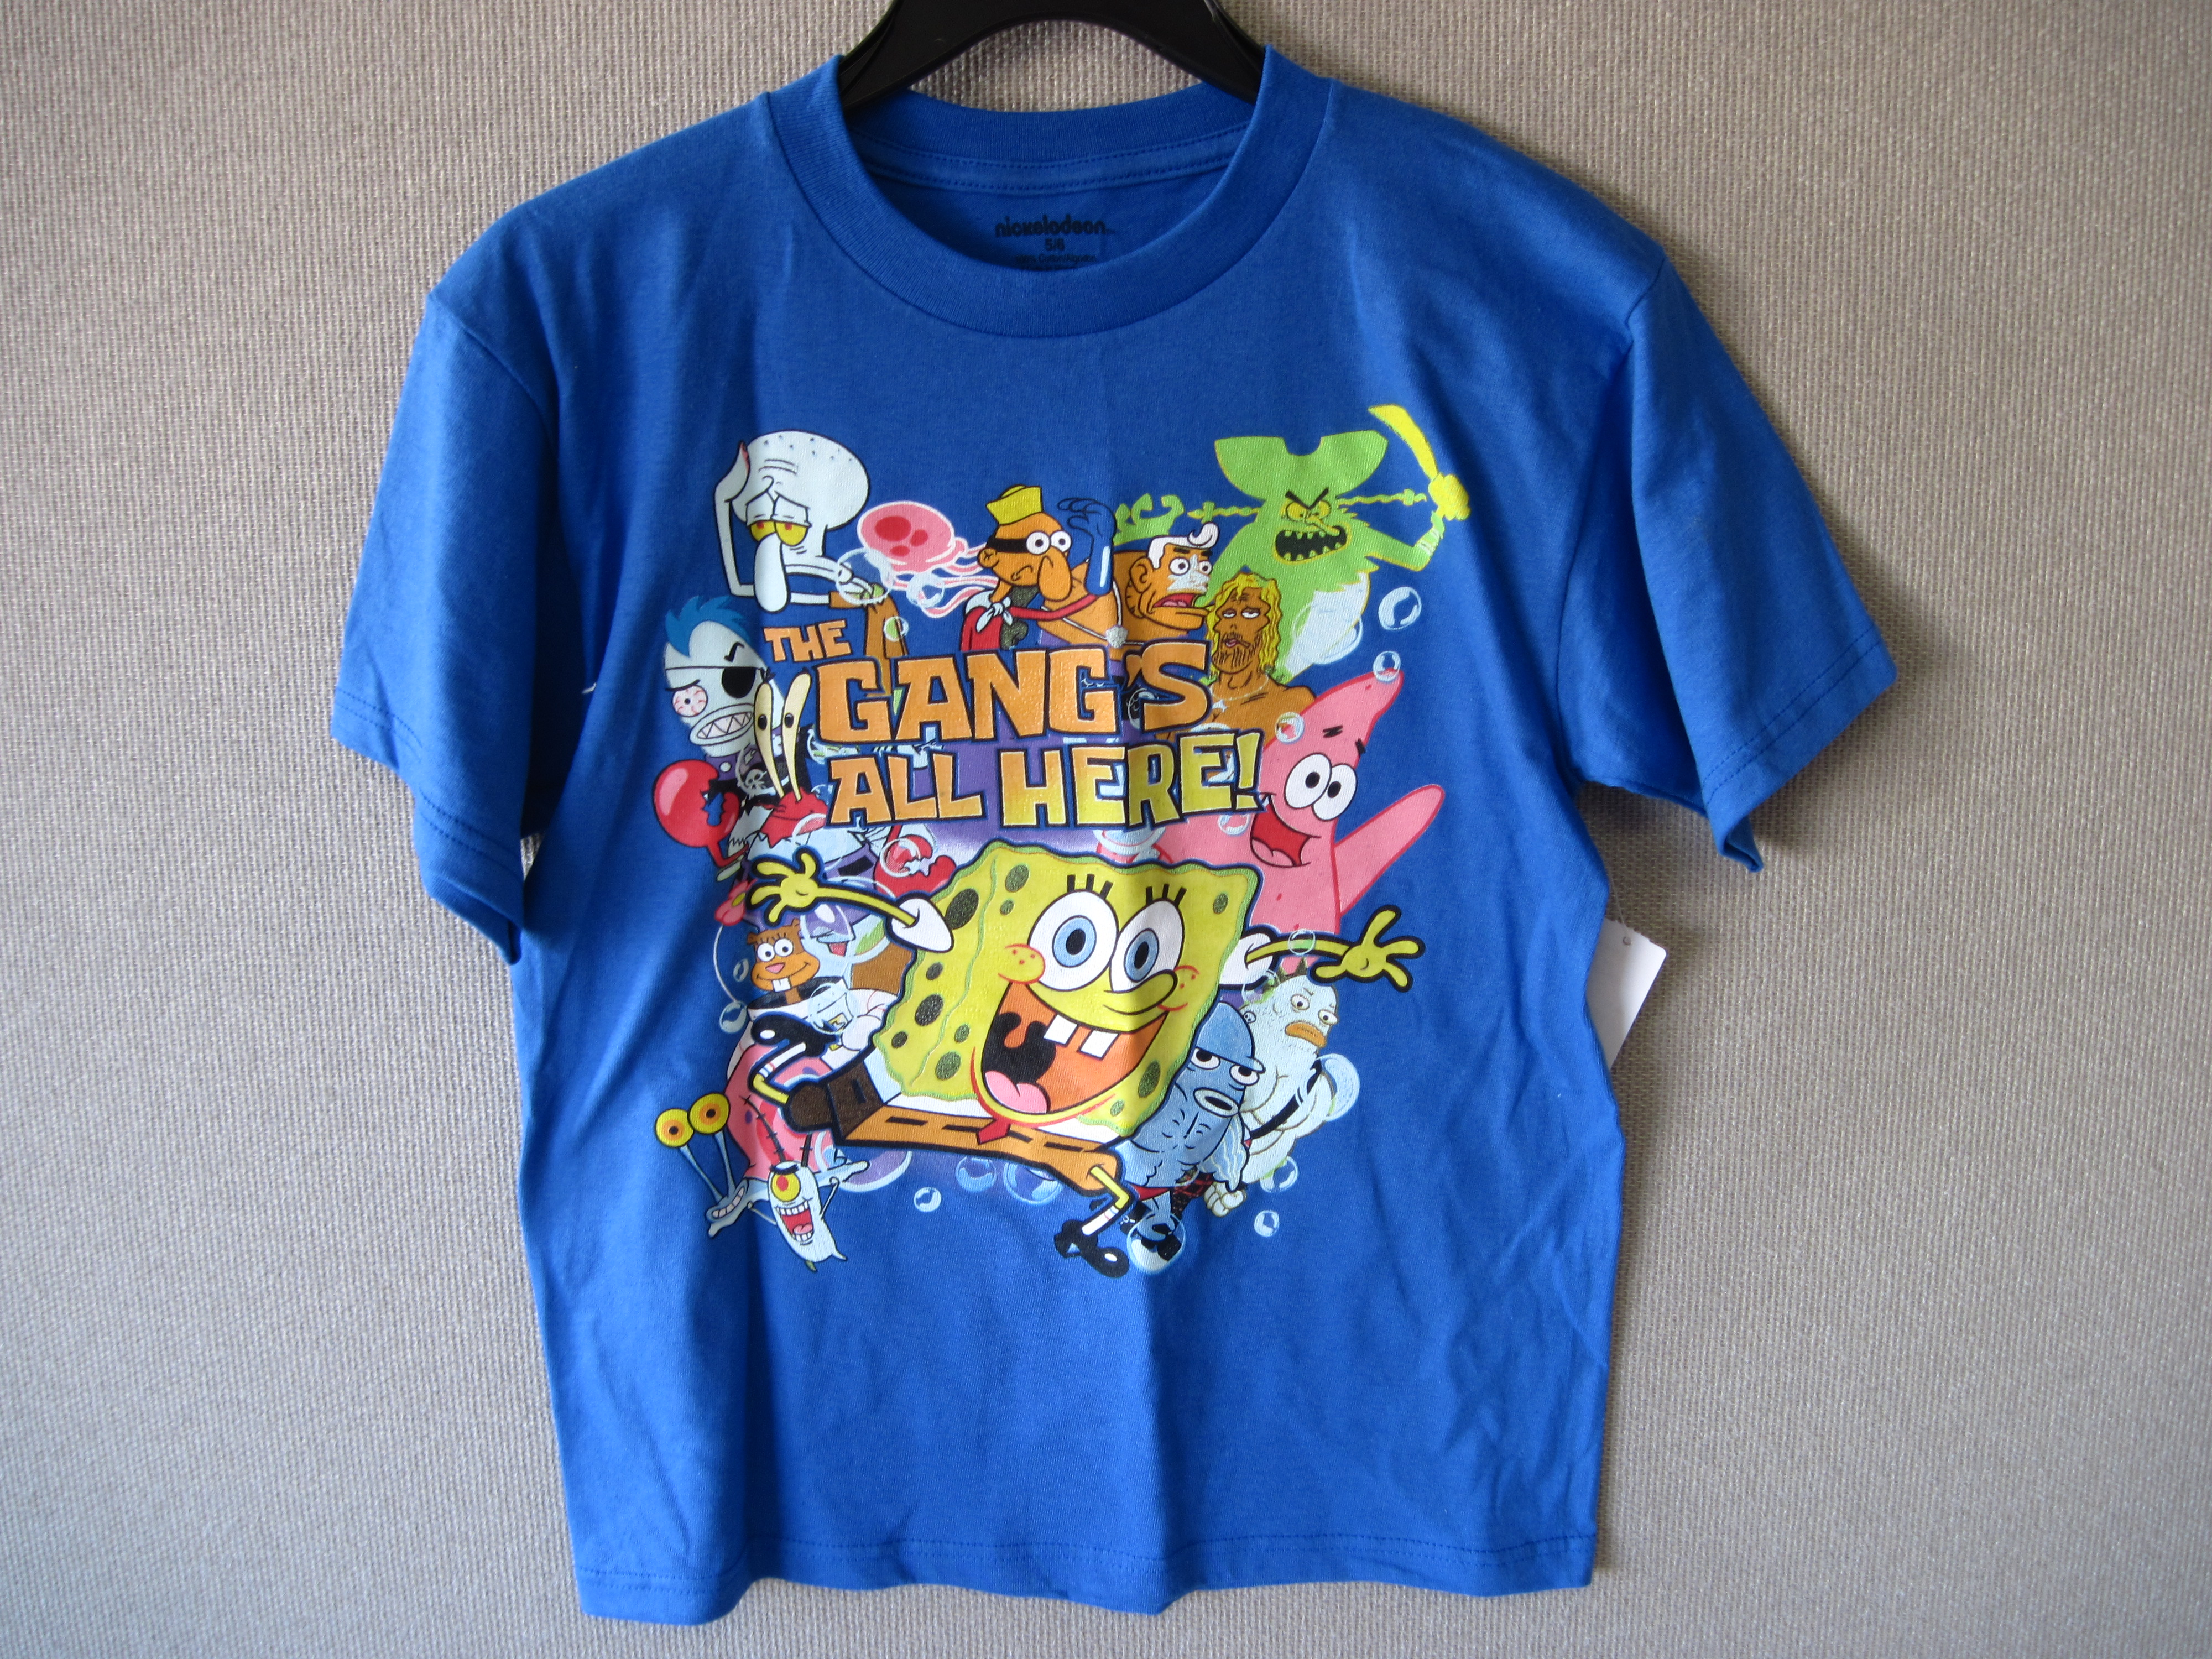 Spongebob T-Shirt Sz 4 (The Gangs All Here) Blue